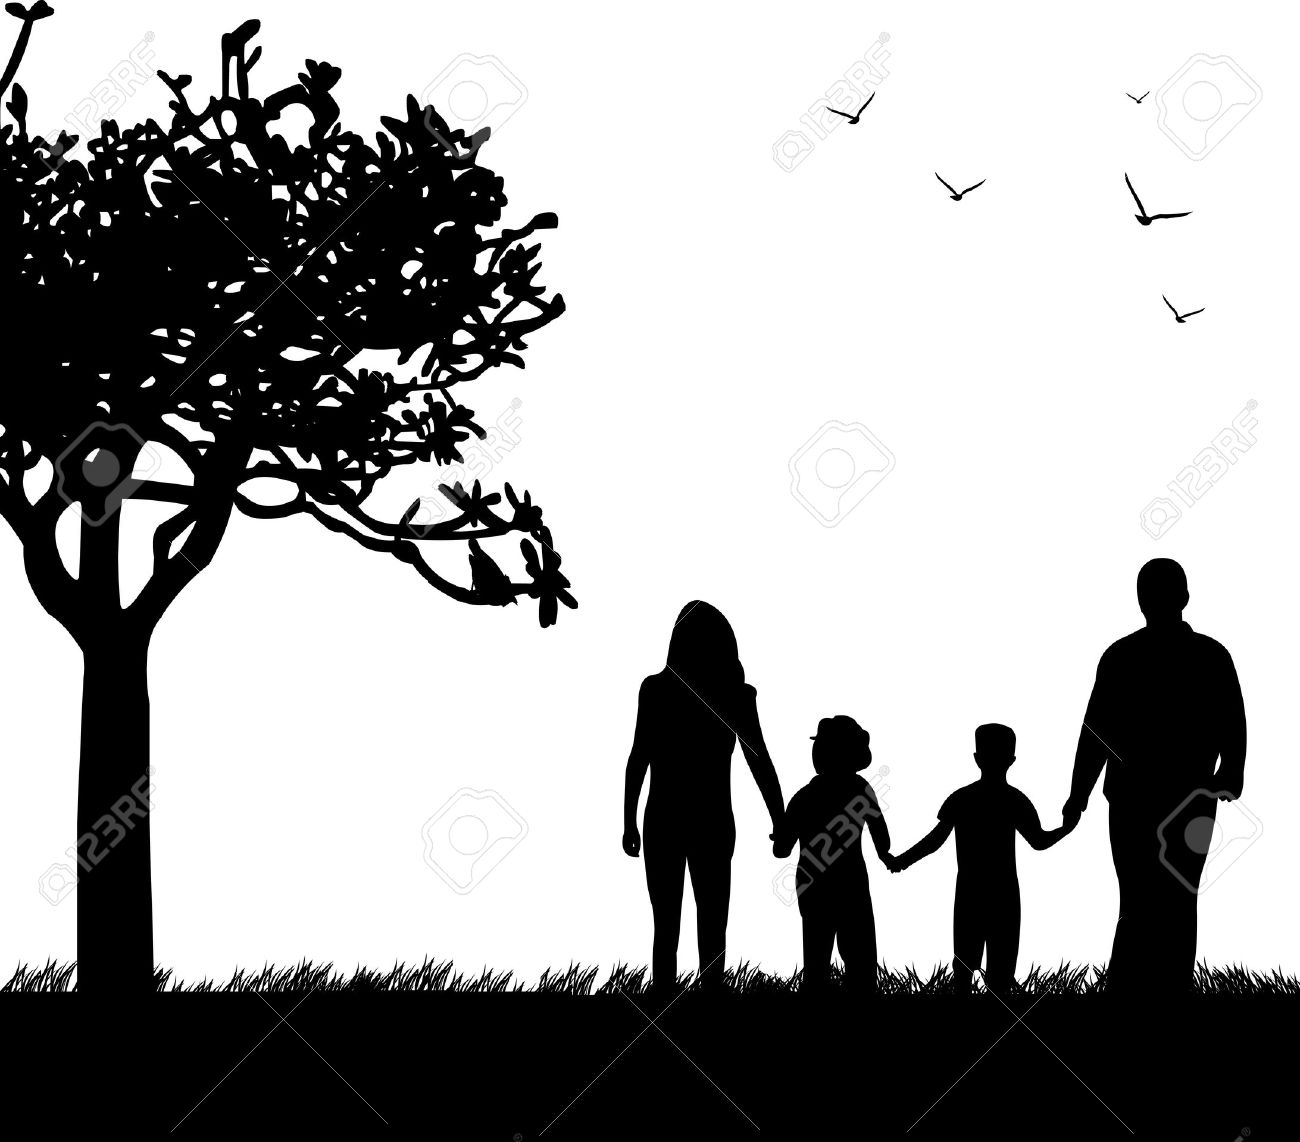 Family walking in park in spring silhouette, one in the series of similar images Stock Vector - 17612045